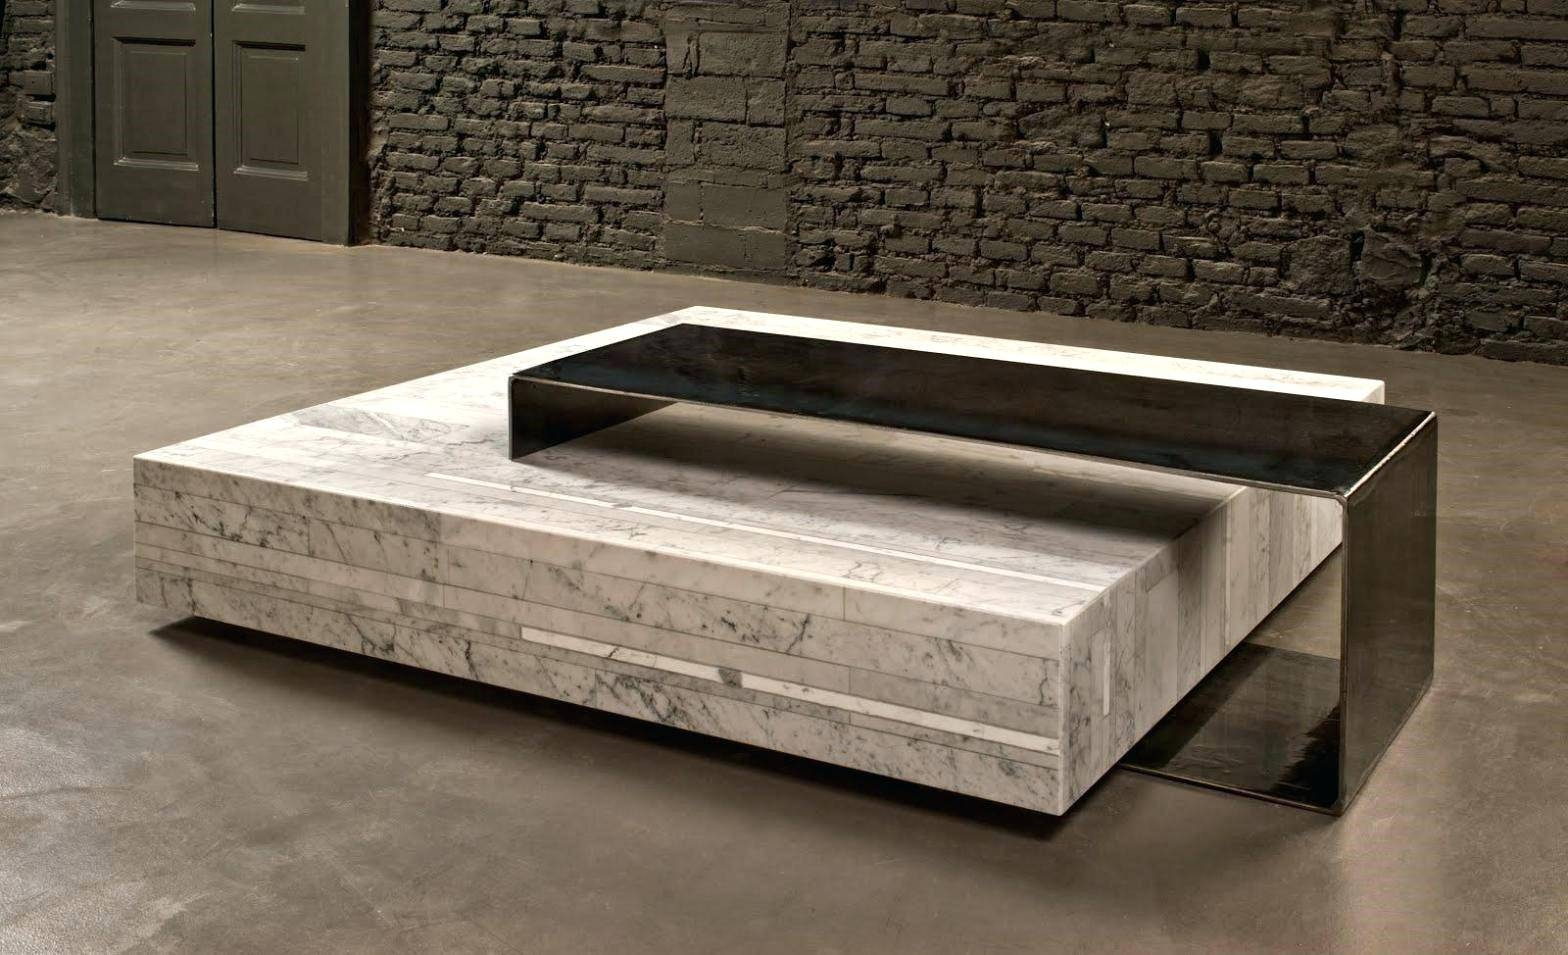 Duncan Phyfe Coffee Table   Idi Design   Coffee Tables Decoration intended for Swirl Glass Coffee Tables (Image 9 of 30)